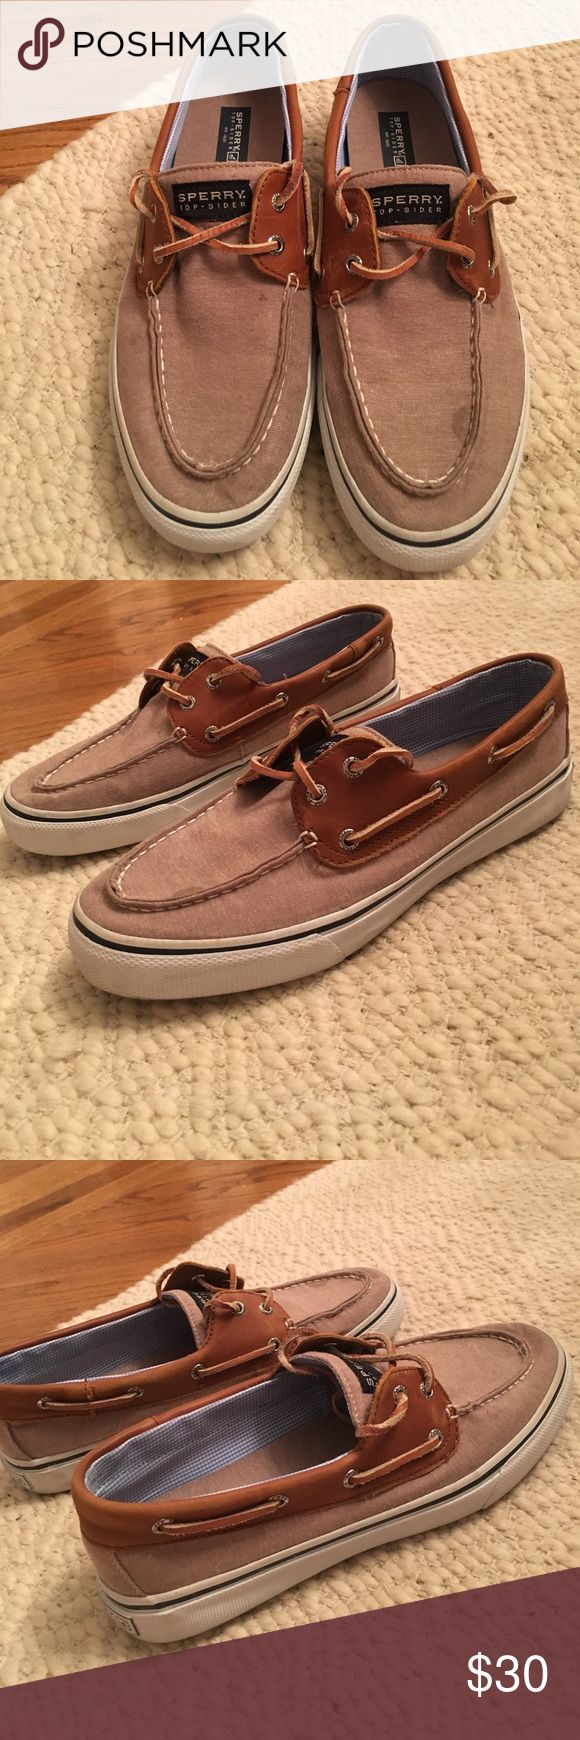 SPERRY TOP-SIDERS MENS SIZE 10.5 SPERRY top-siders men's size 10.5. Canvas and leather material.  A few stains (see pics) but overall shoes are in great condition.  Only worn a few times! Sperry Top-Sider Shoes